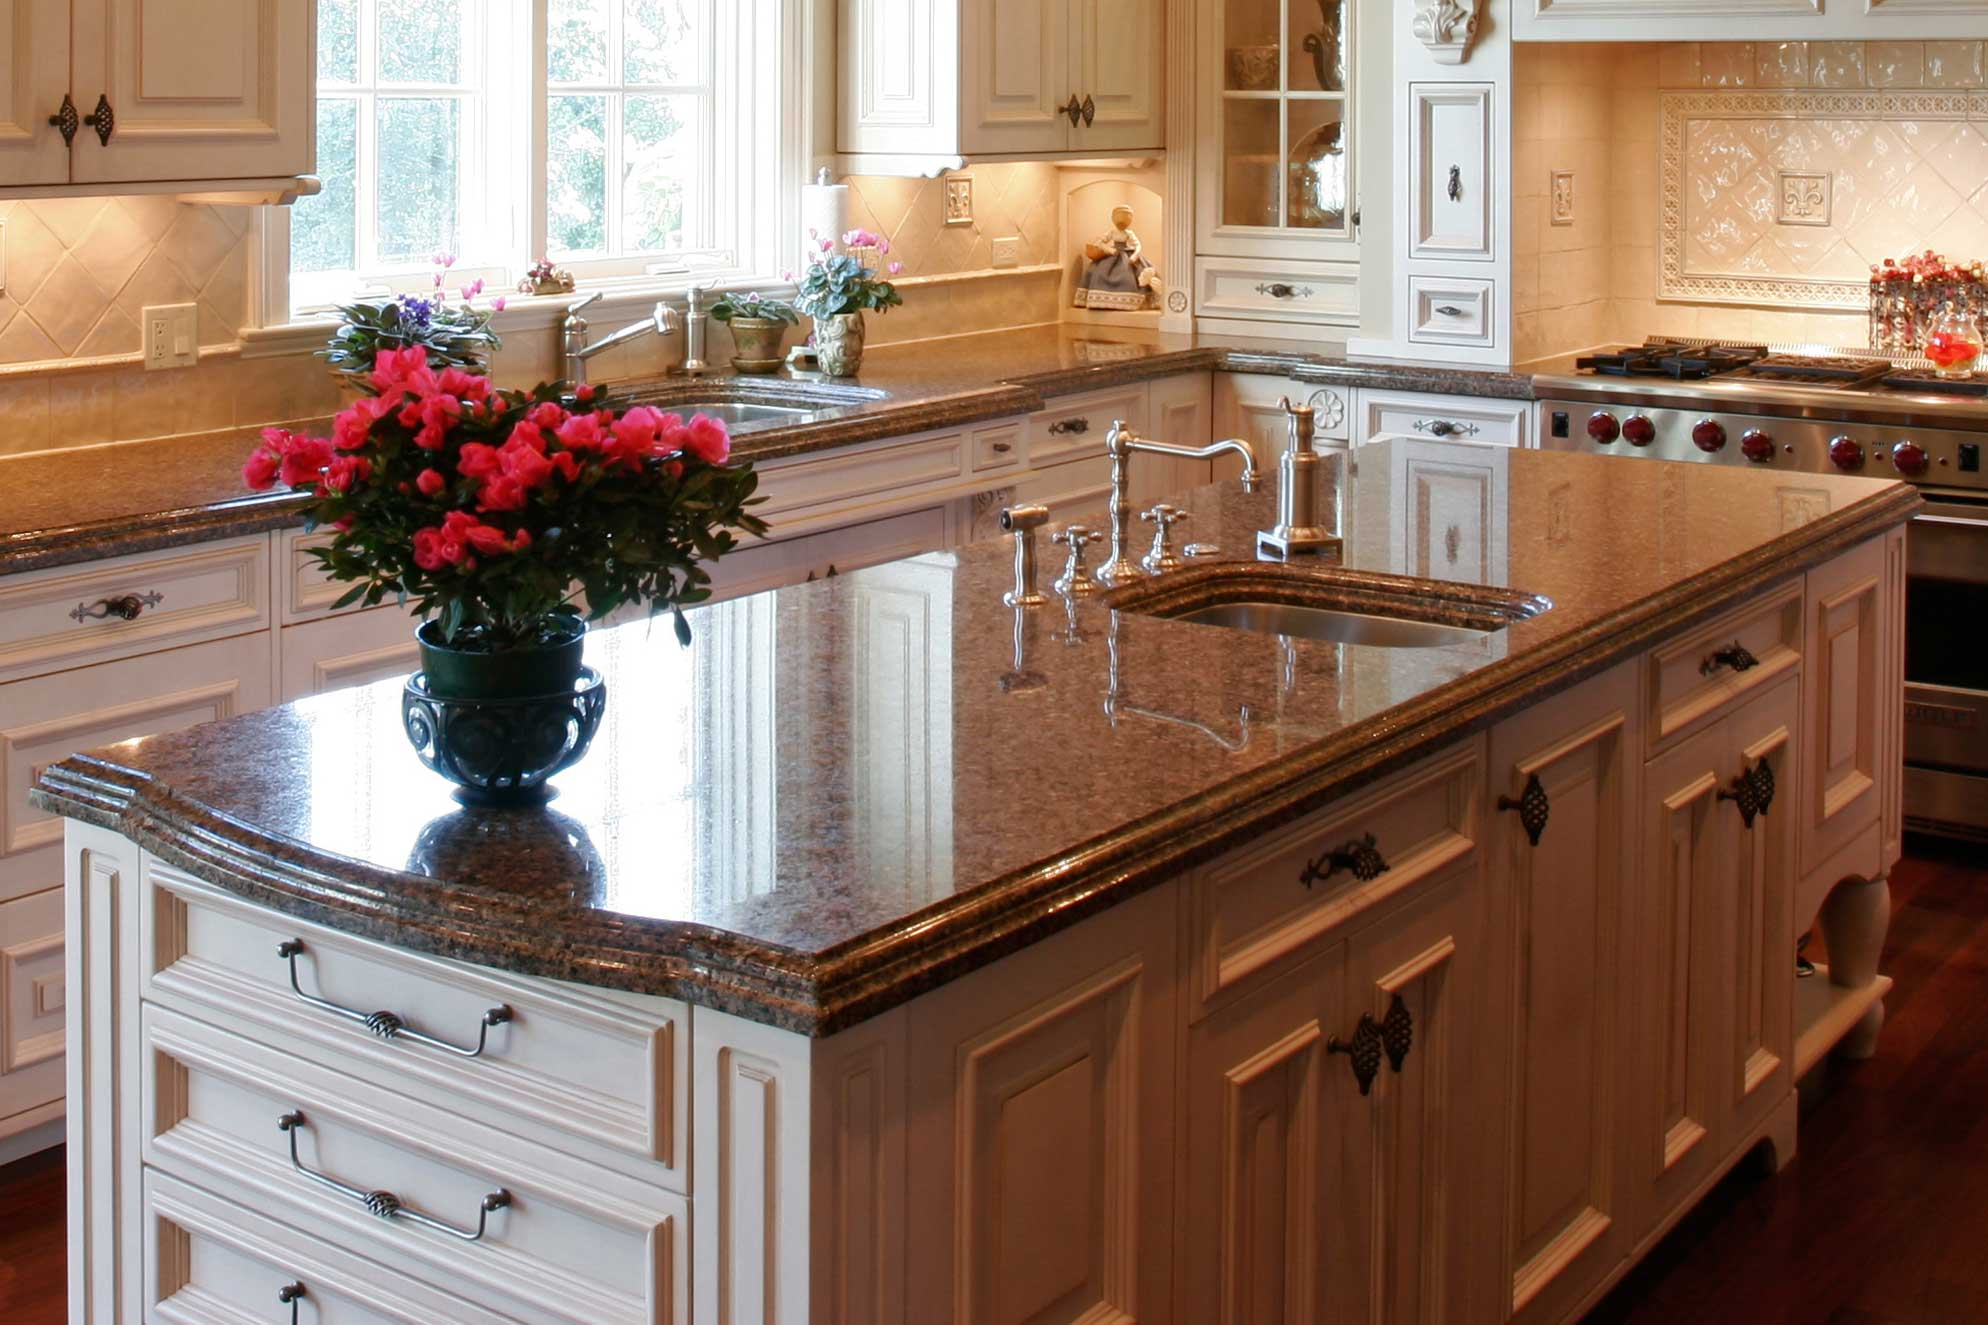 Maple Leaf Kitchen Cabinets Ltd Countertops